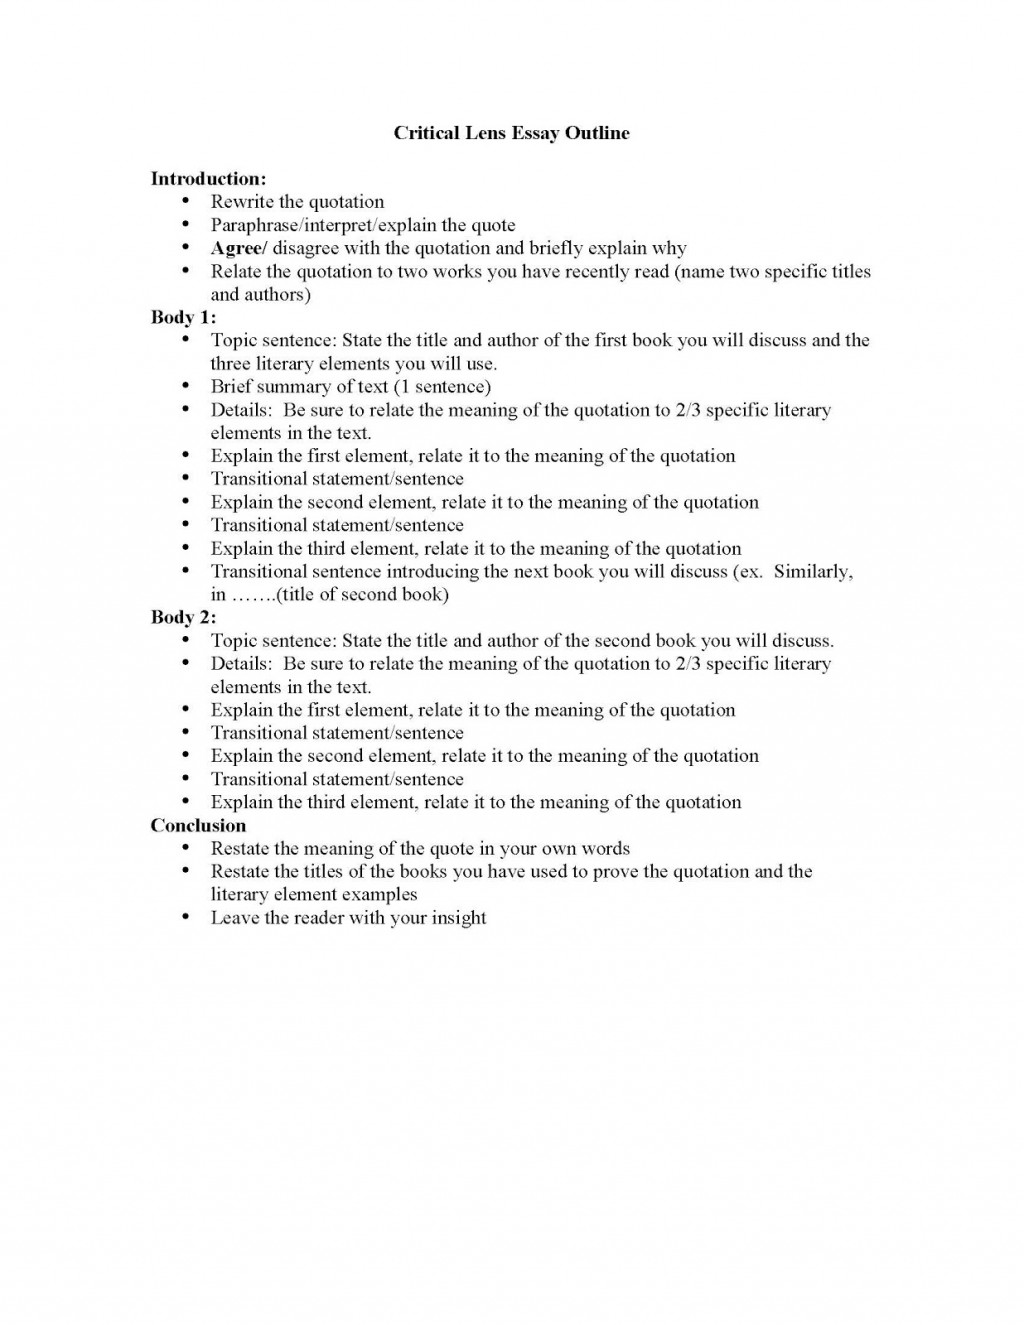 009 Descriptive Essay Outline Critical20lens20essay20outline20and20literay20elements Page 1 Outstanding Template Pdf About A Person Large